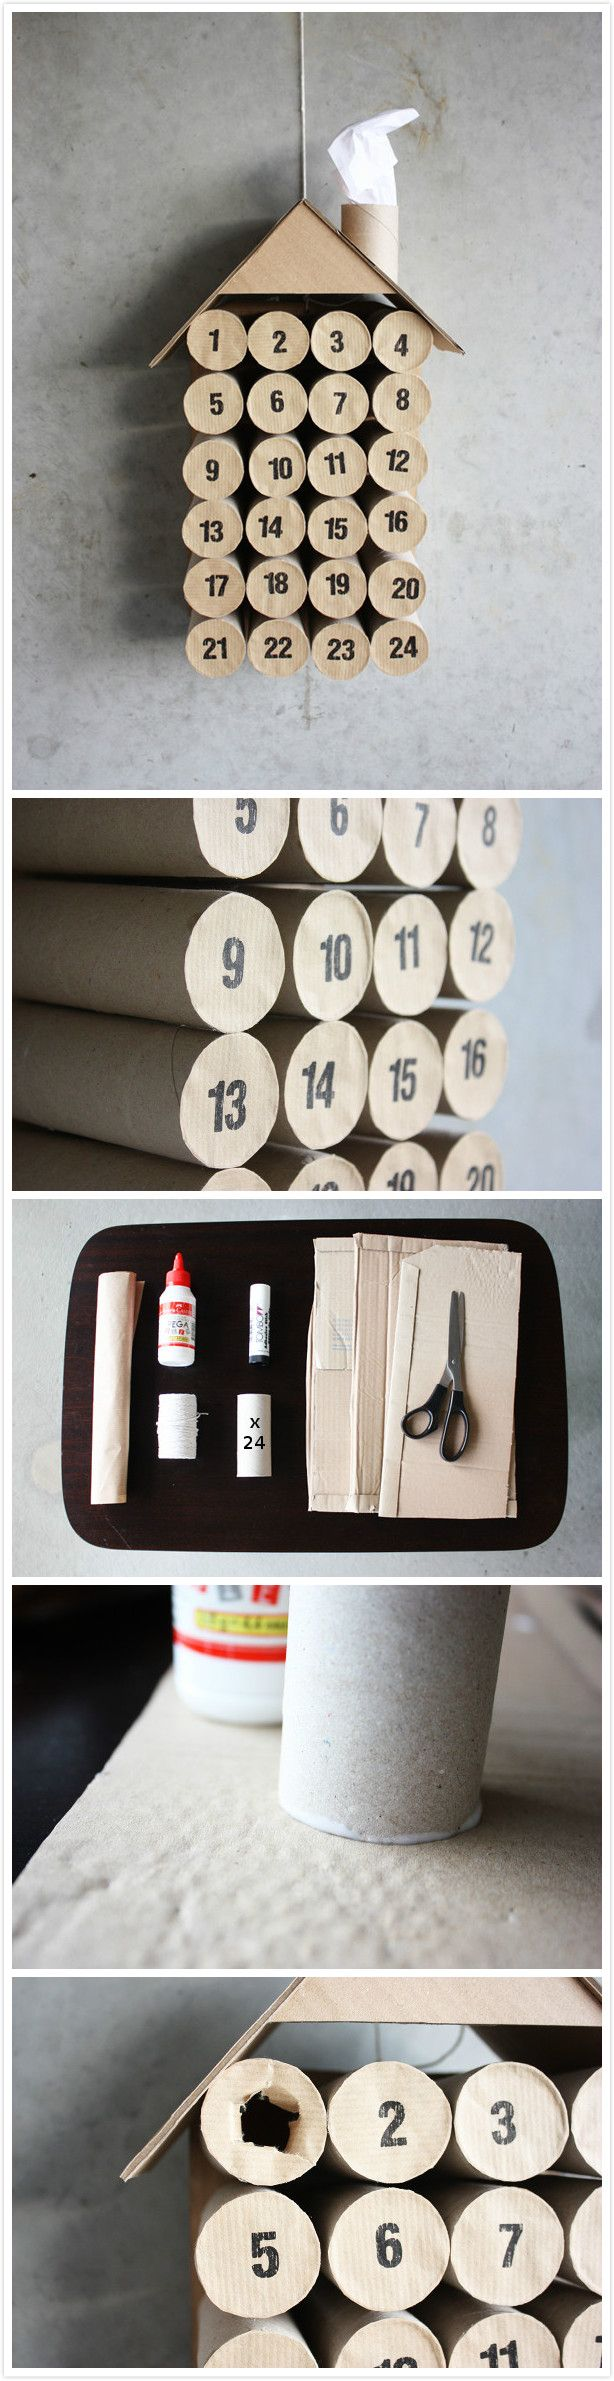 10 Christmas crafts projects made out of toilet paper rolls in diy cardboard  with toilet paper roll DIY Craft Christmas advent calendar